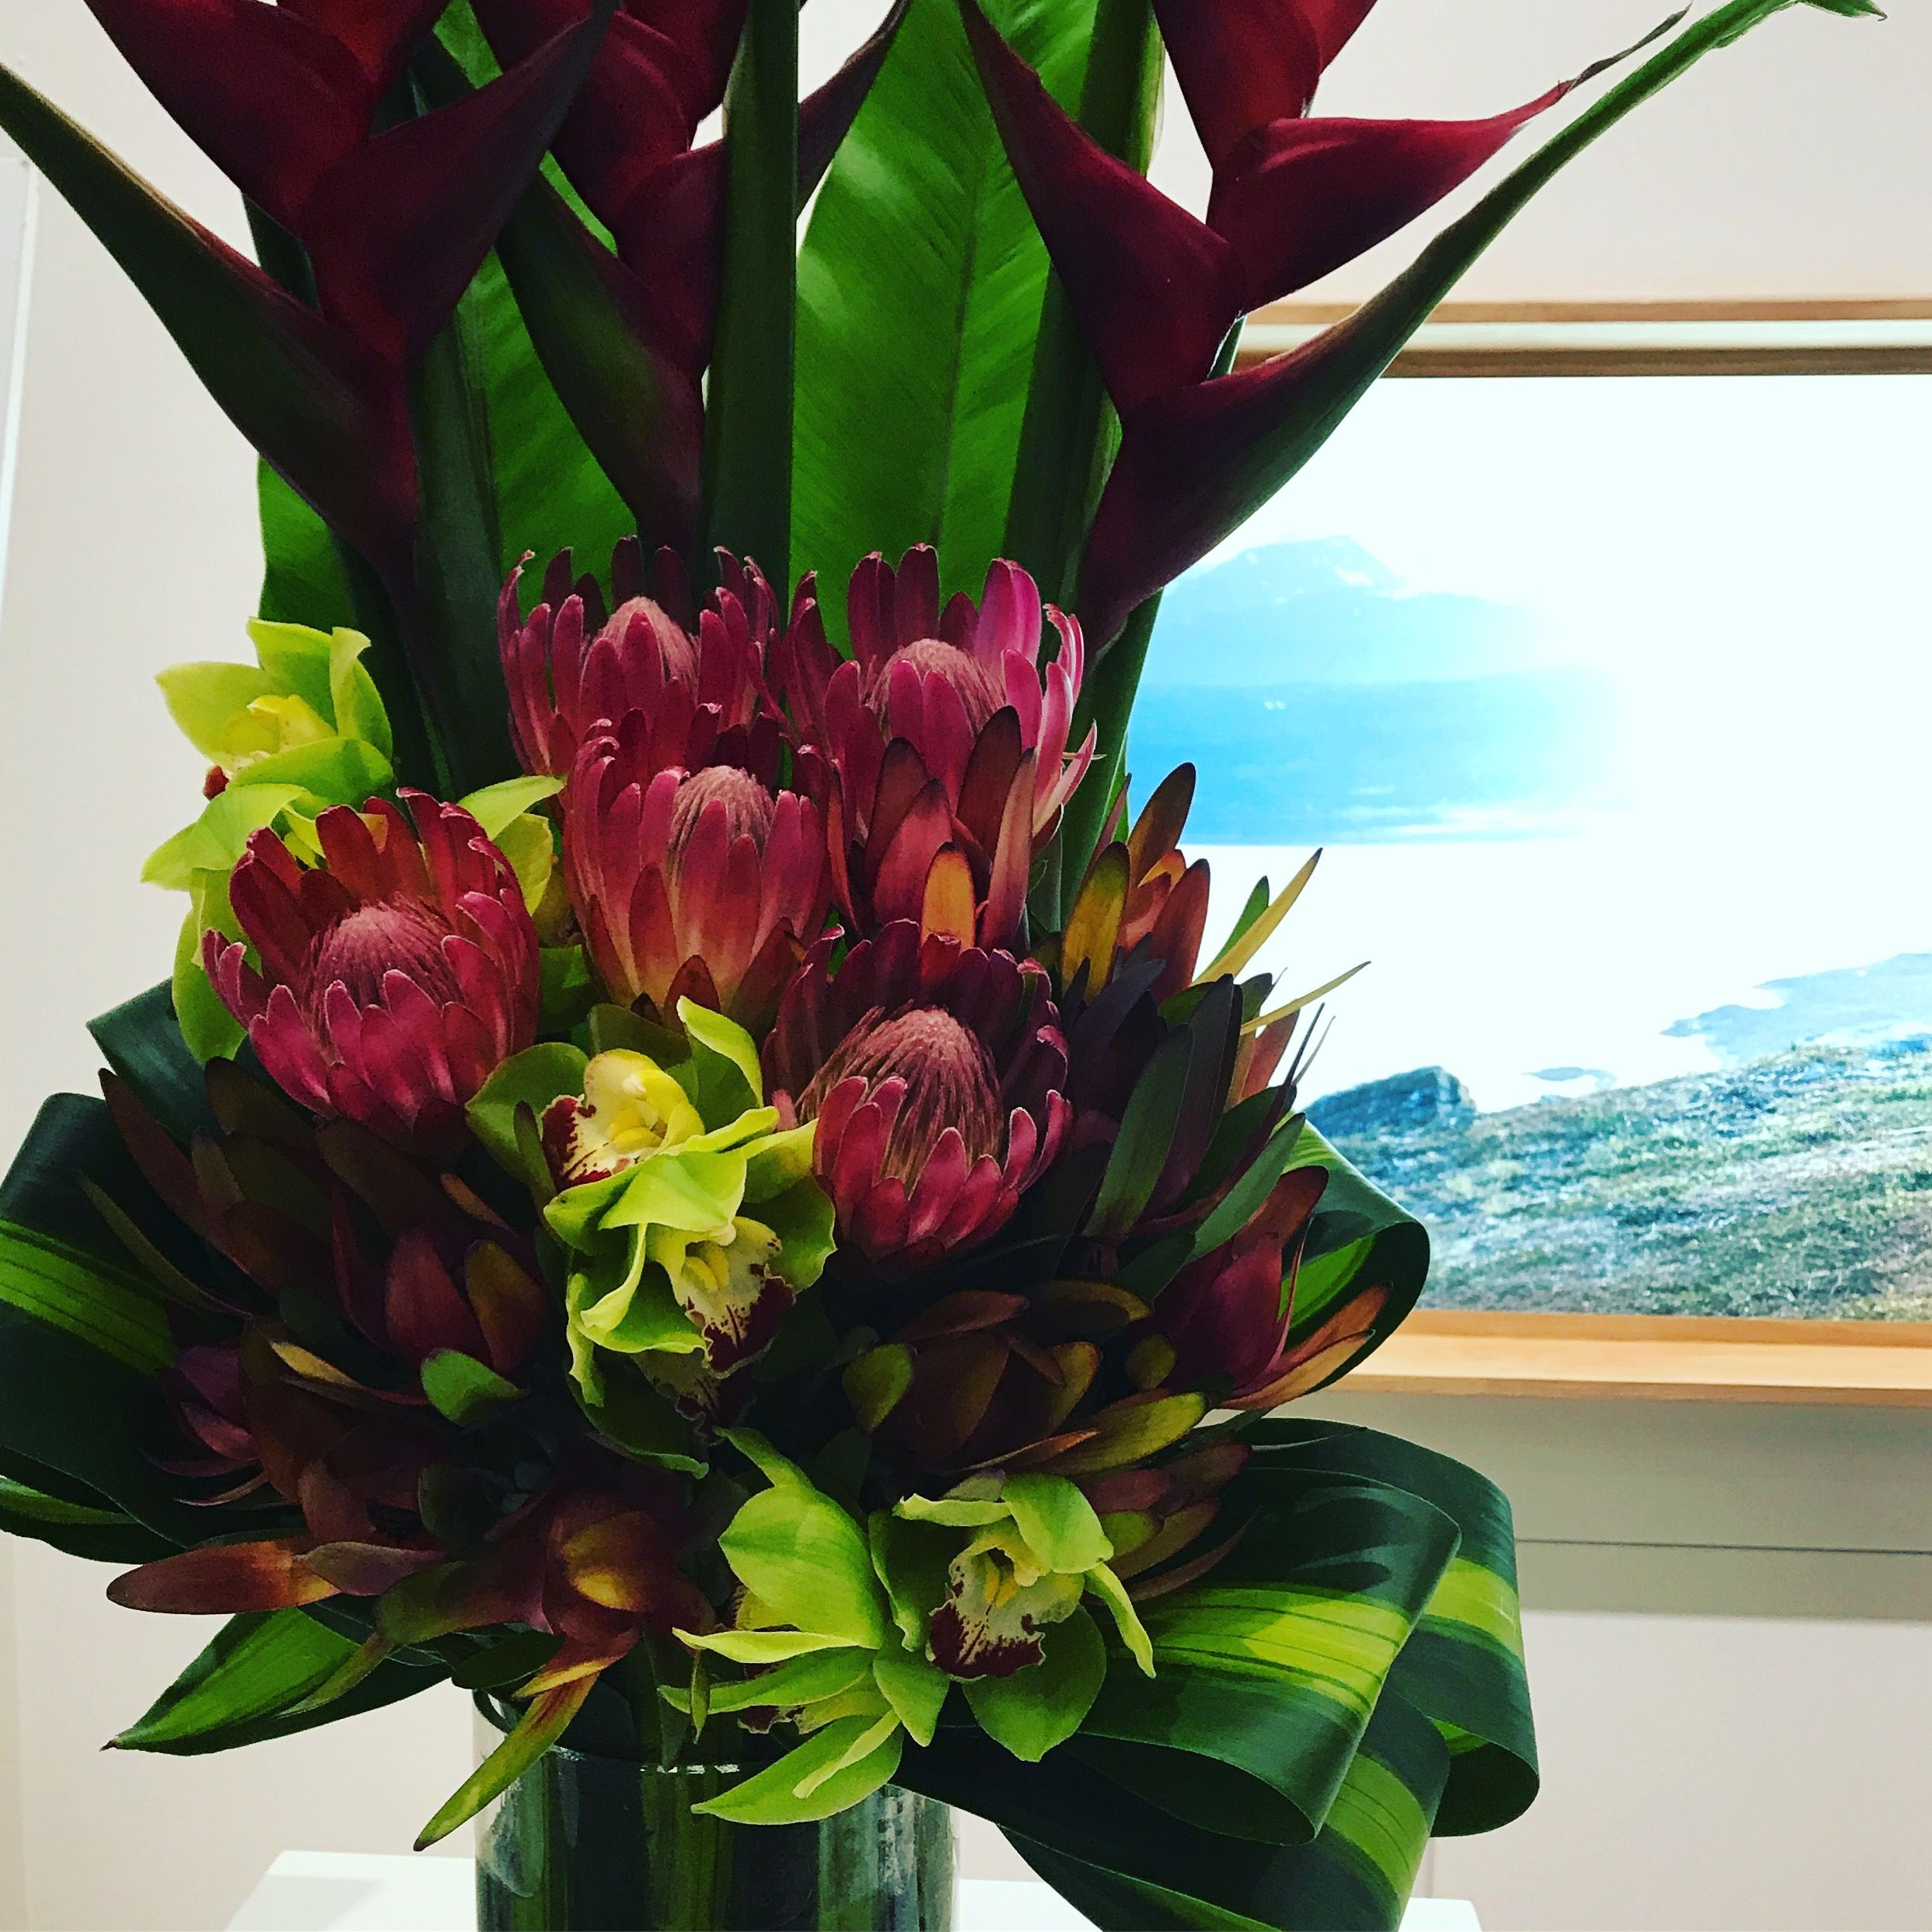 Flower Delivery Singapore Happy Saturday Flowerdeliverysingapore Floristsingapore Florist Flowerdelivery Sgflorist Flowerdelivery Onlineflorist Fl